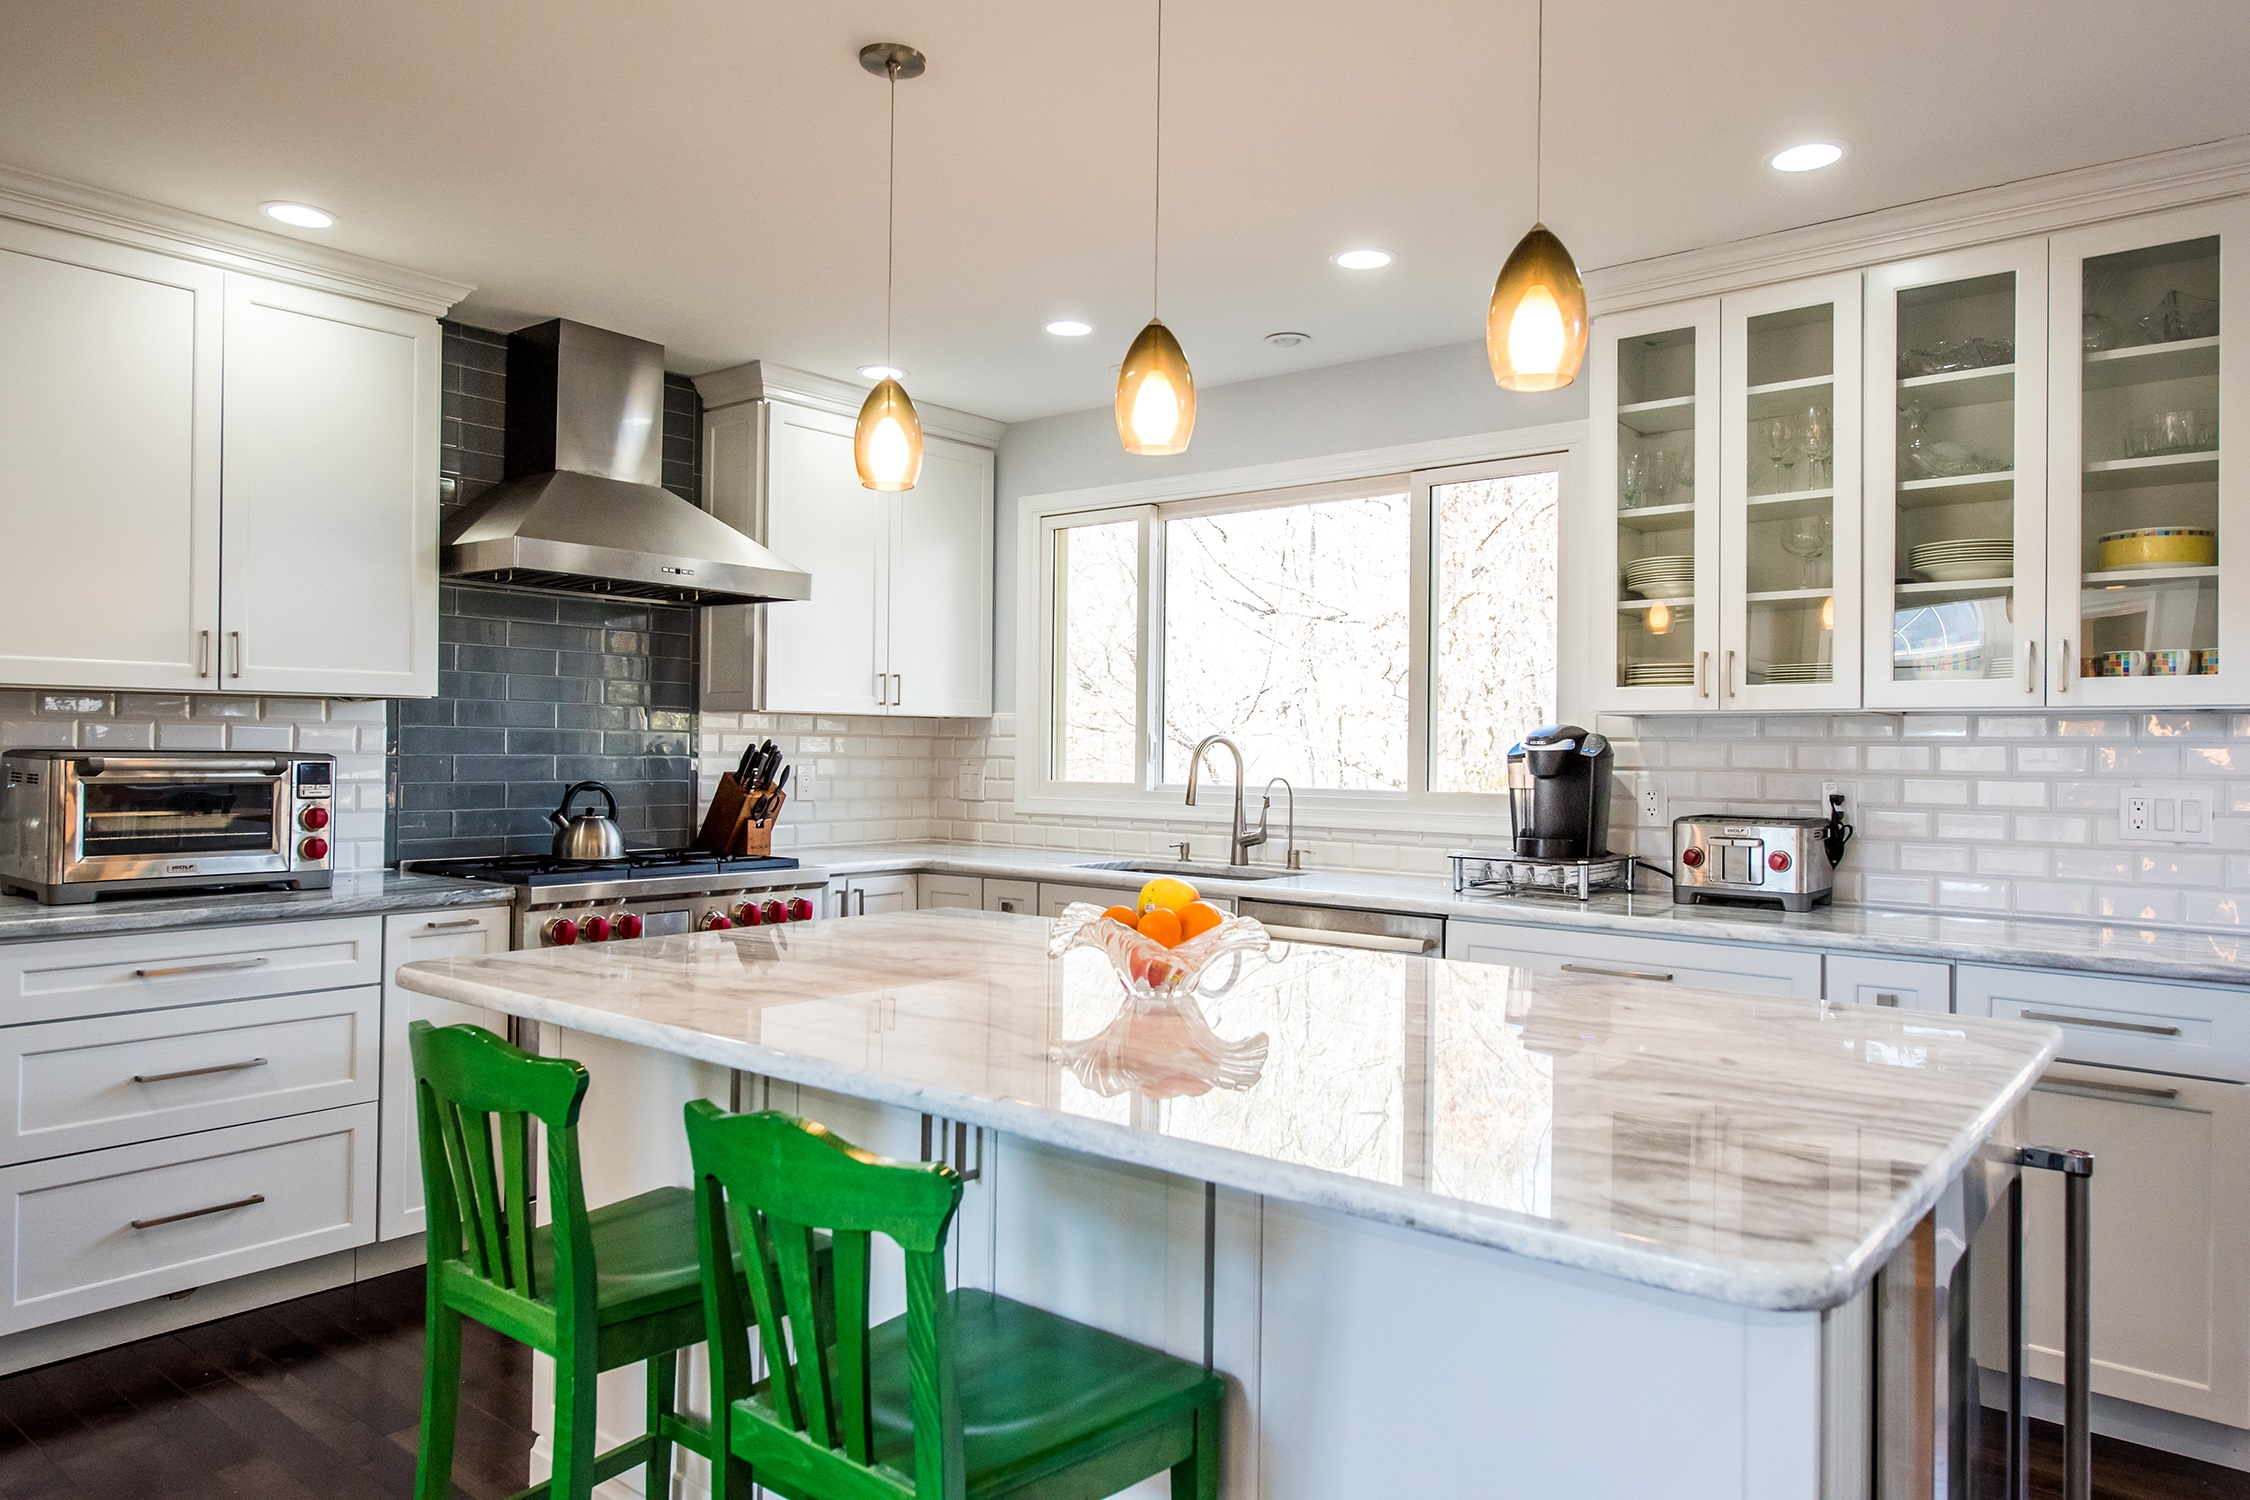 Gorgeous Kitchen Renovation In Potomac Maryland: Kitchen Remodeling Gaithersburg Md